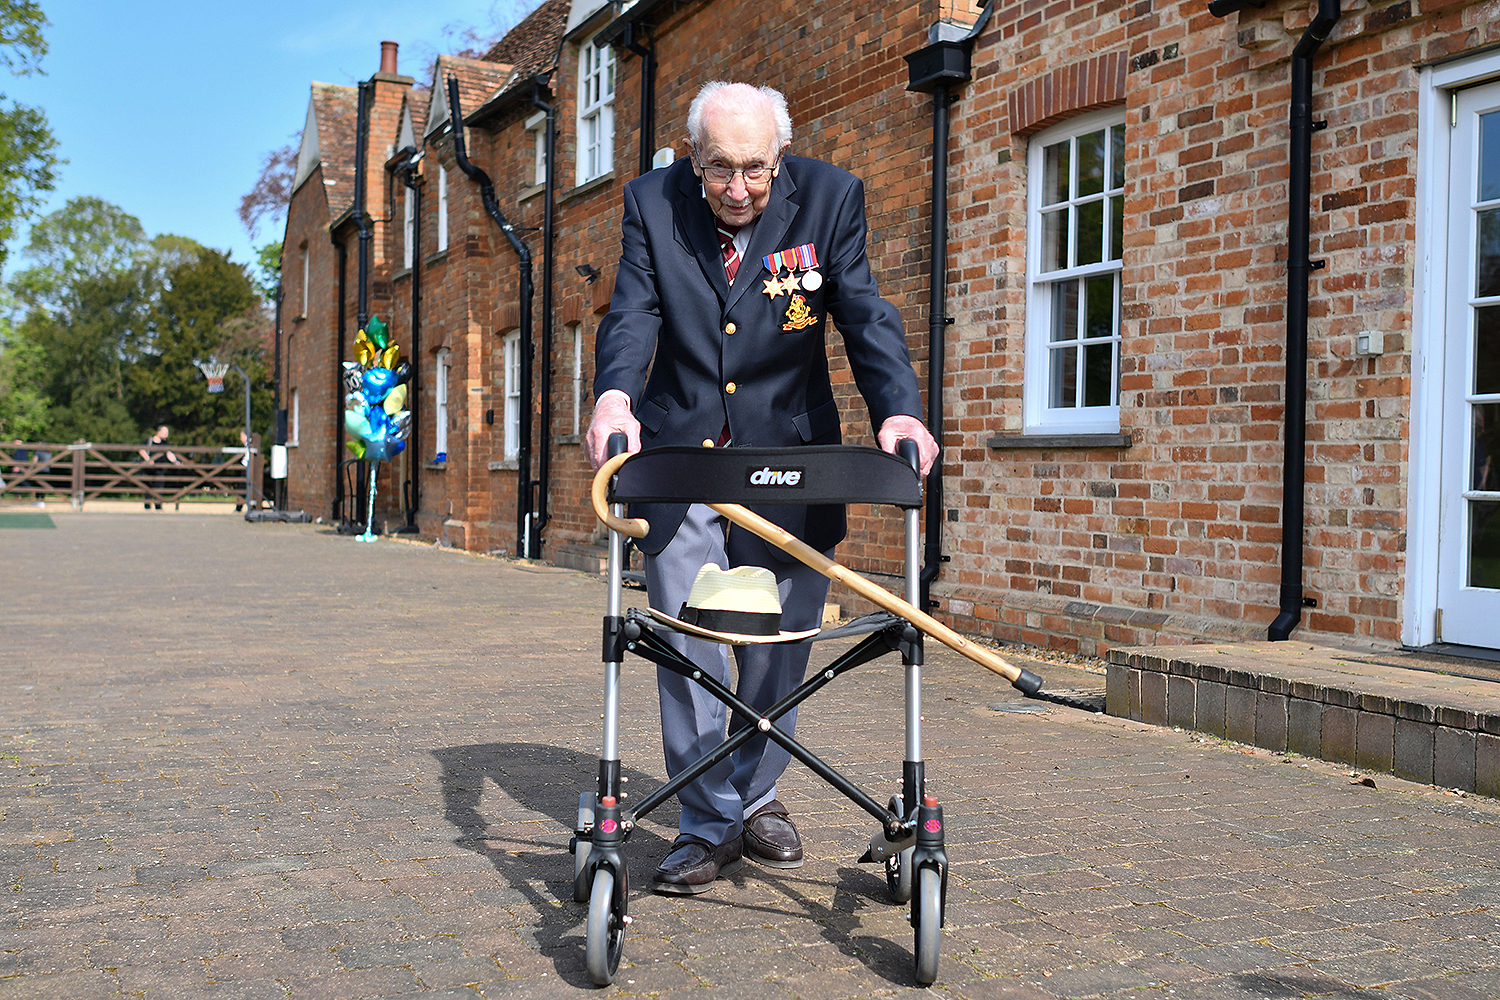 British World War II veteran Capt. Tom Moore, 99, walks a lap of his garden in the village of Marston Moretaine, north of London, on April 16. Moore walked 100 laps to raise money for the U.K.'s National Health Service. JUSTIN TALLIS/AFP via Getty Images